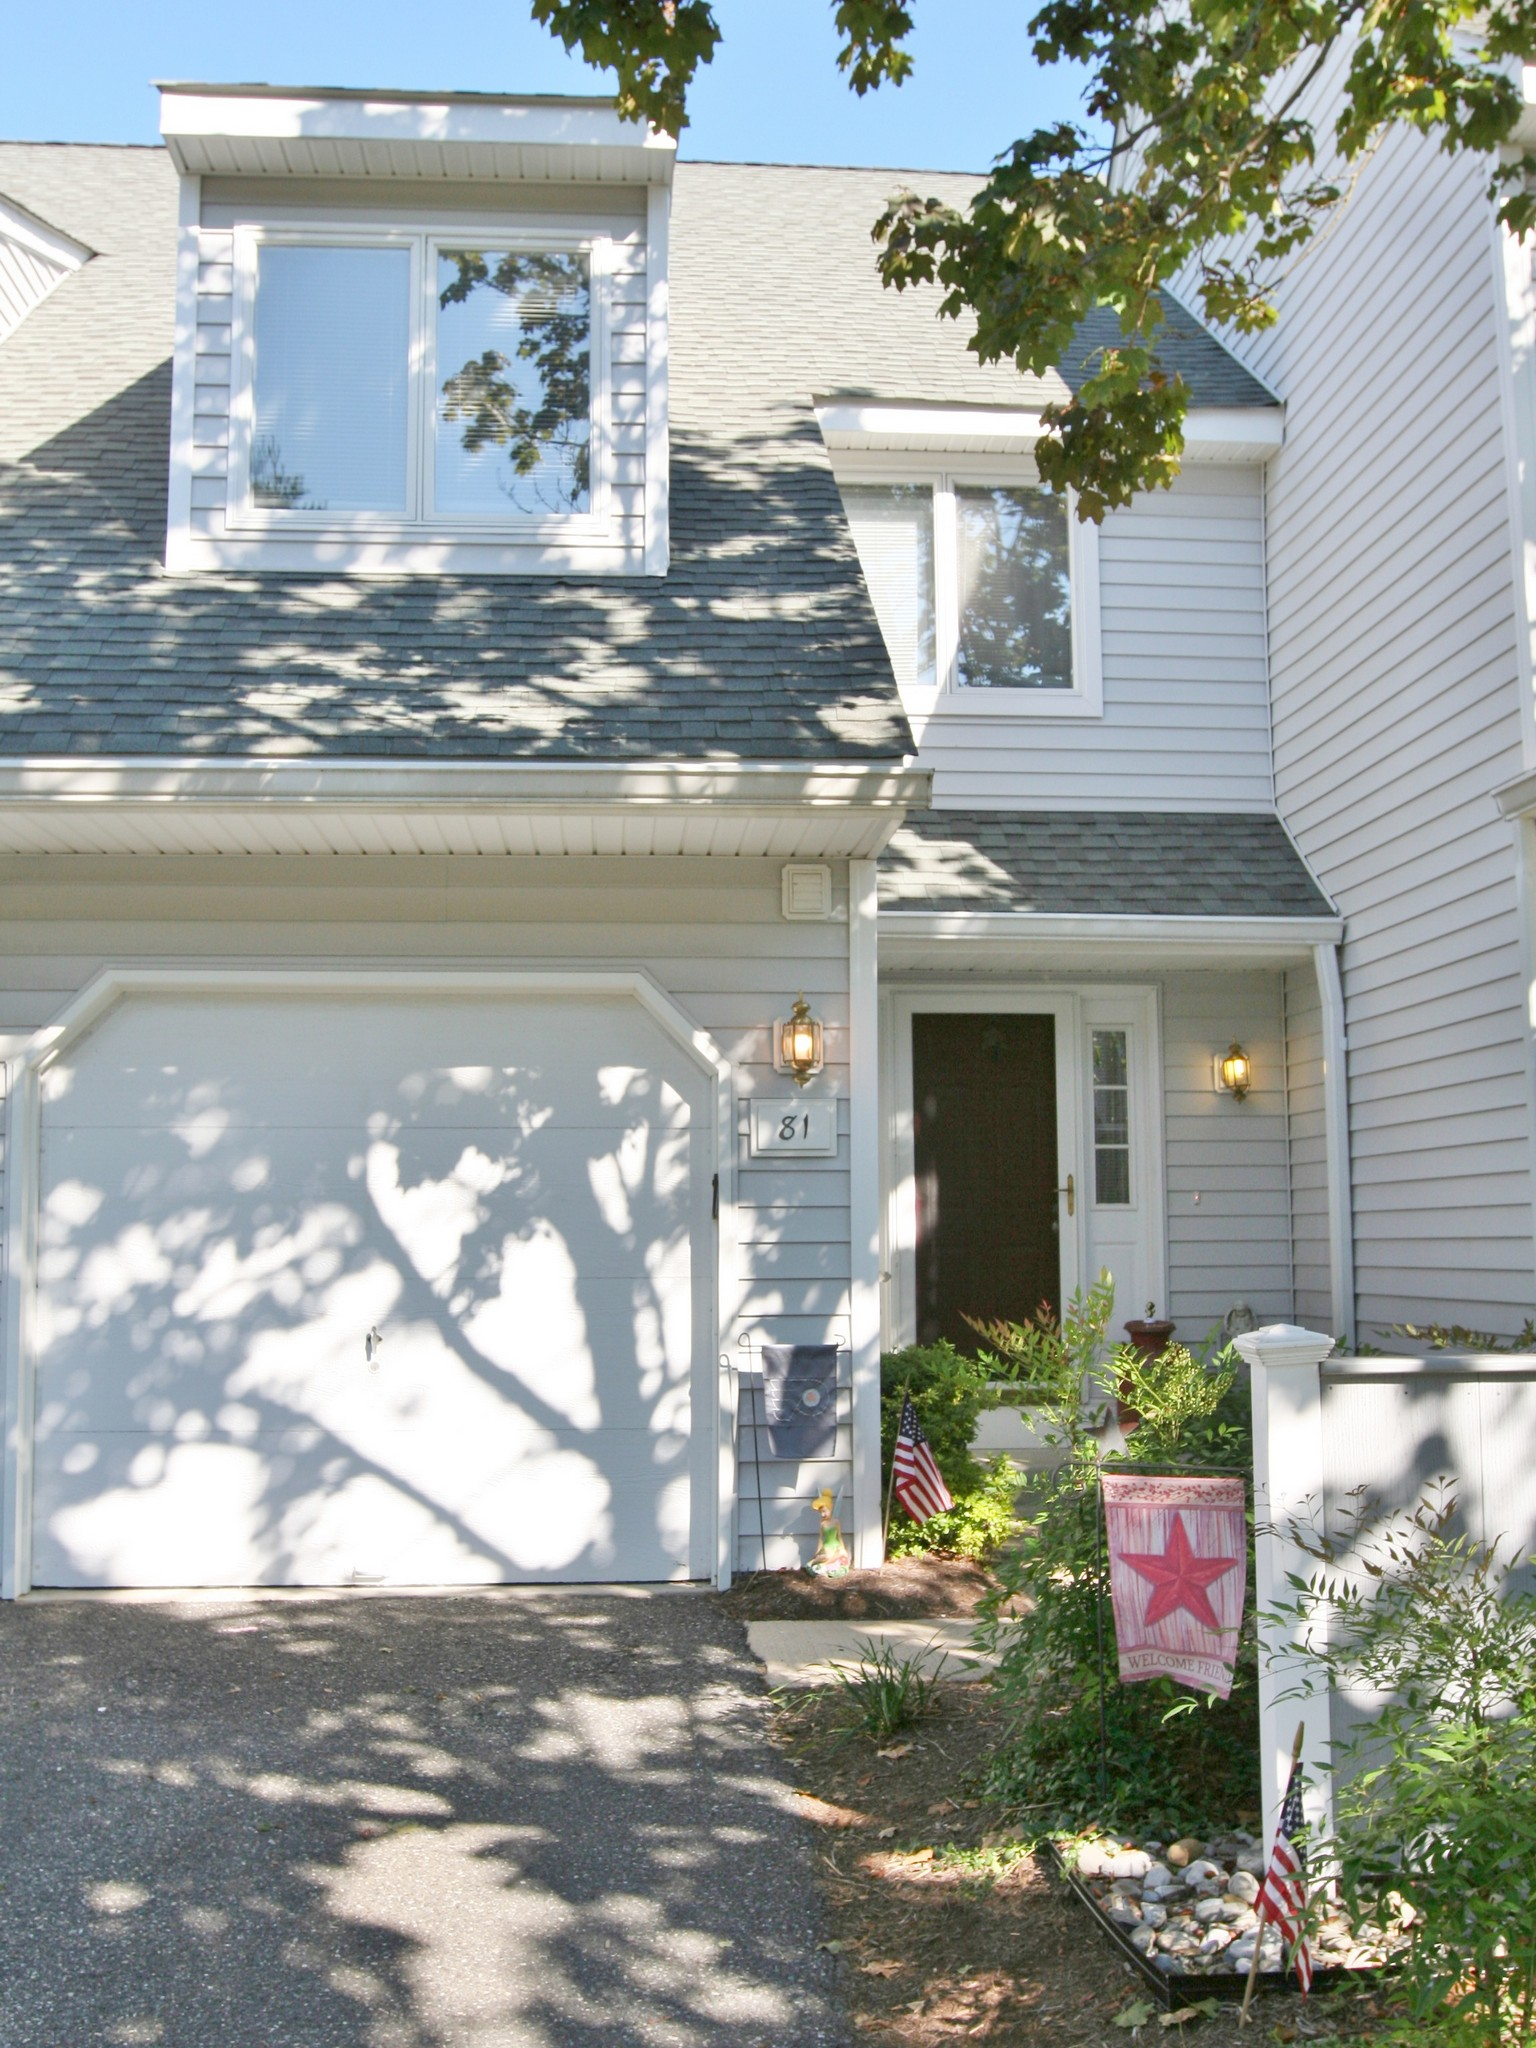 Property For Sale at 81 E. Thomas Ct